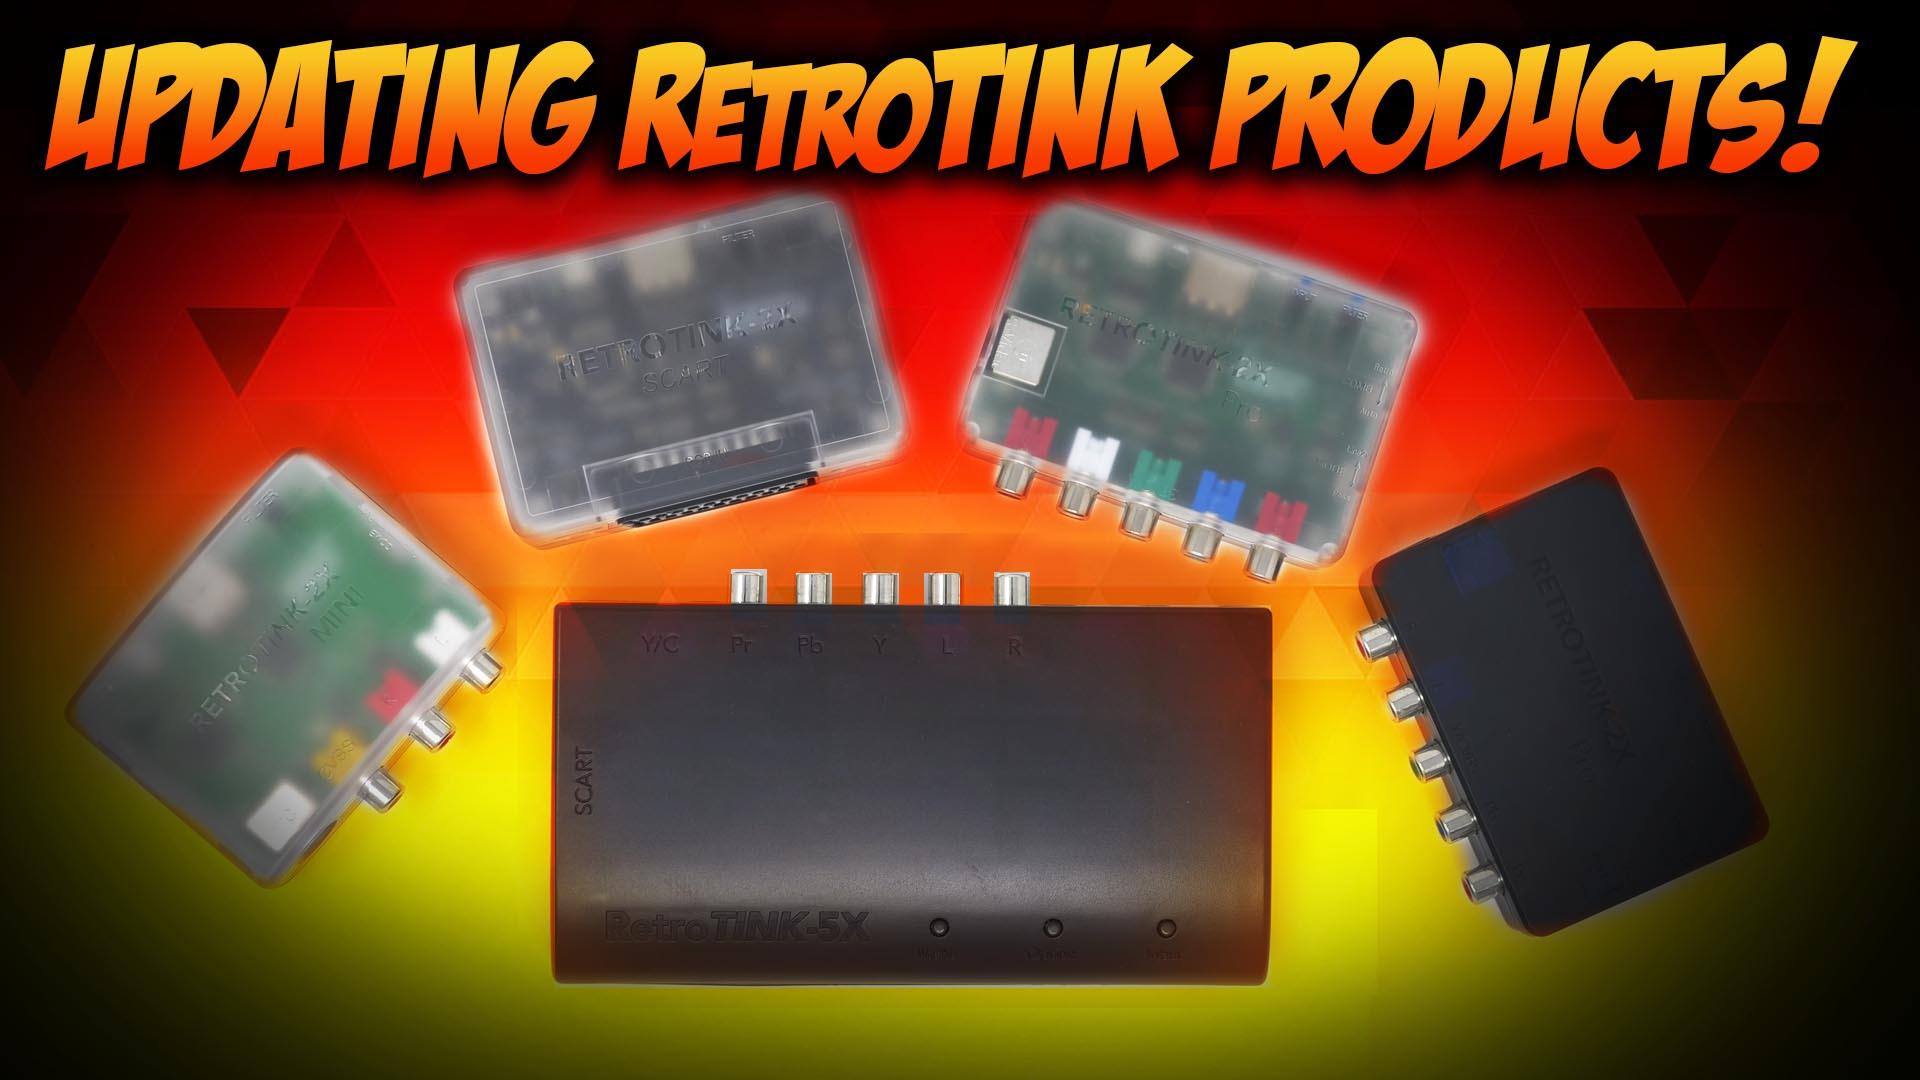 How to Update Your RetroTINK's Firmware